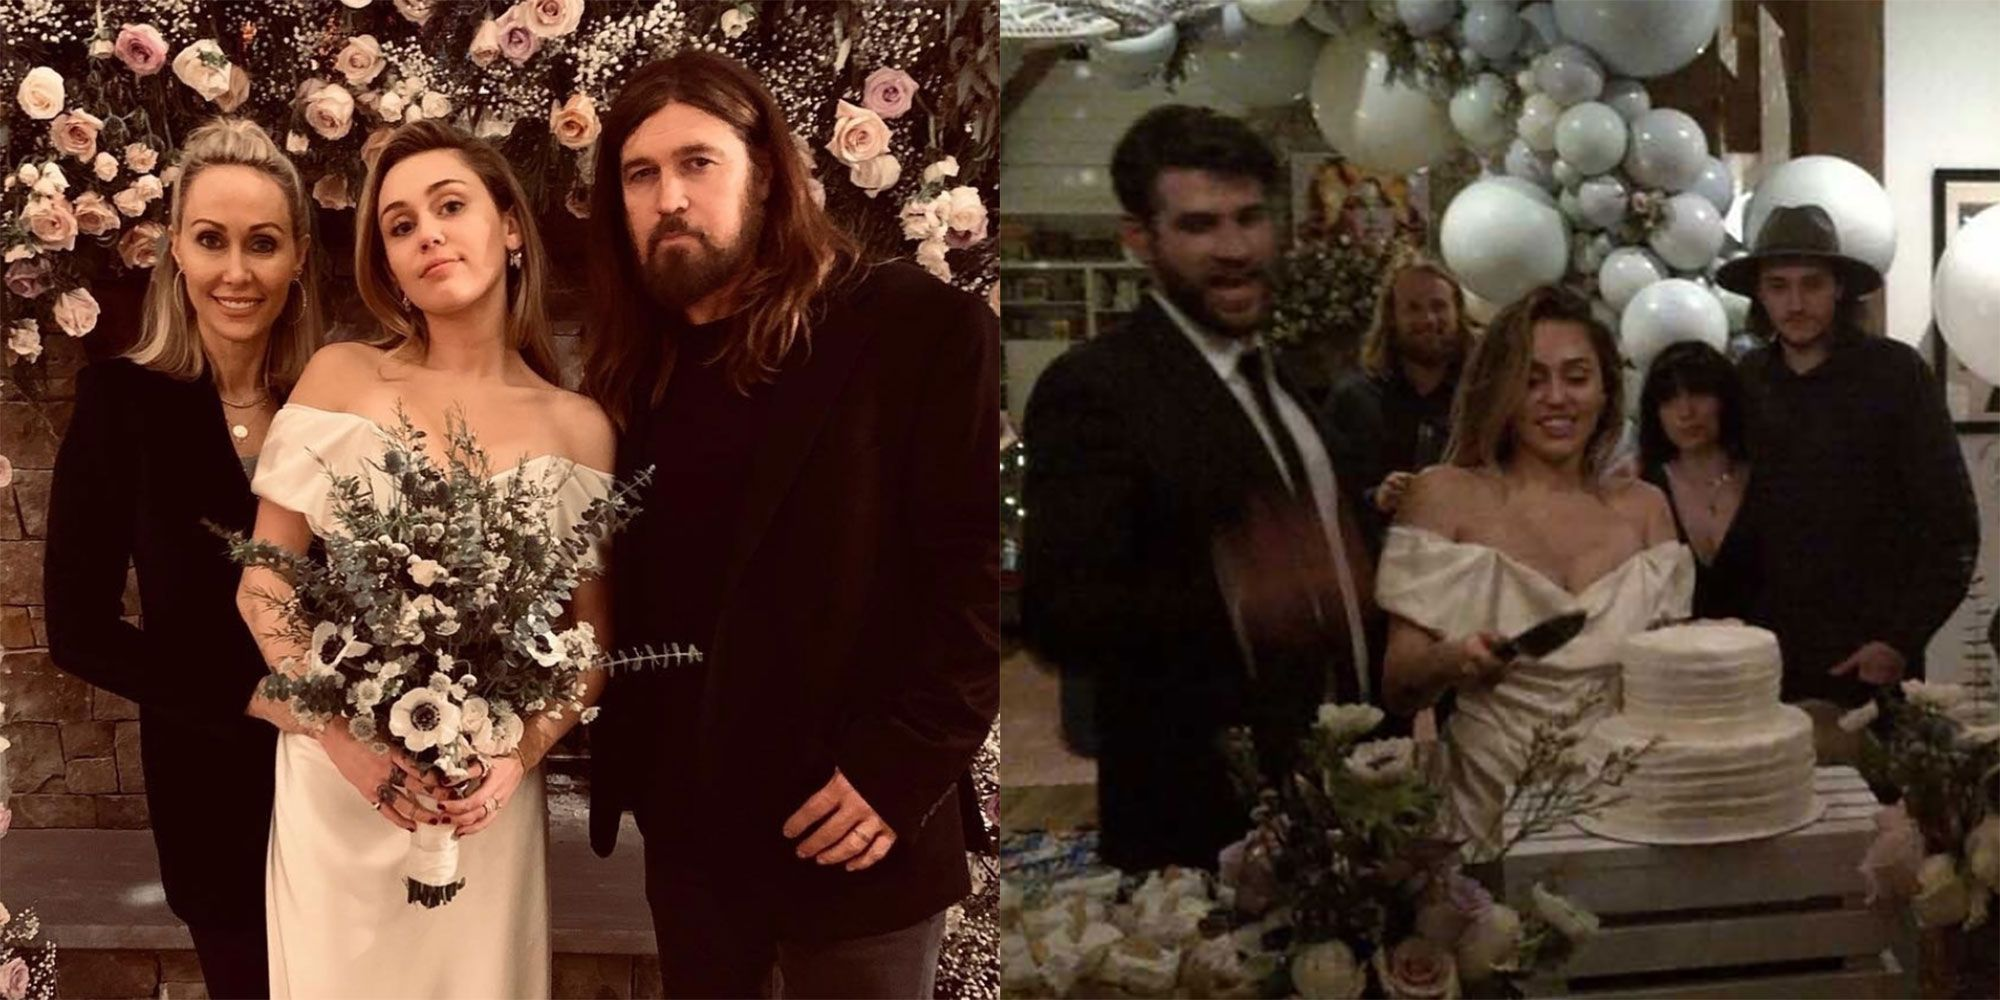 Miley Cyrus Wedding Dress.Miley Cyrus And Liam Hemsworth S Wedding Details Decor Cake And